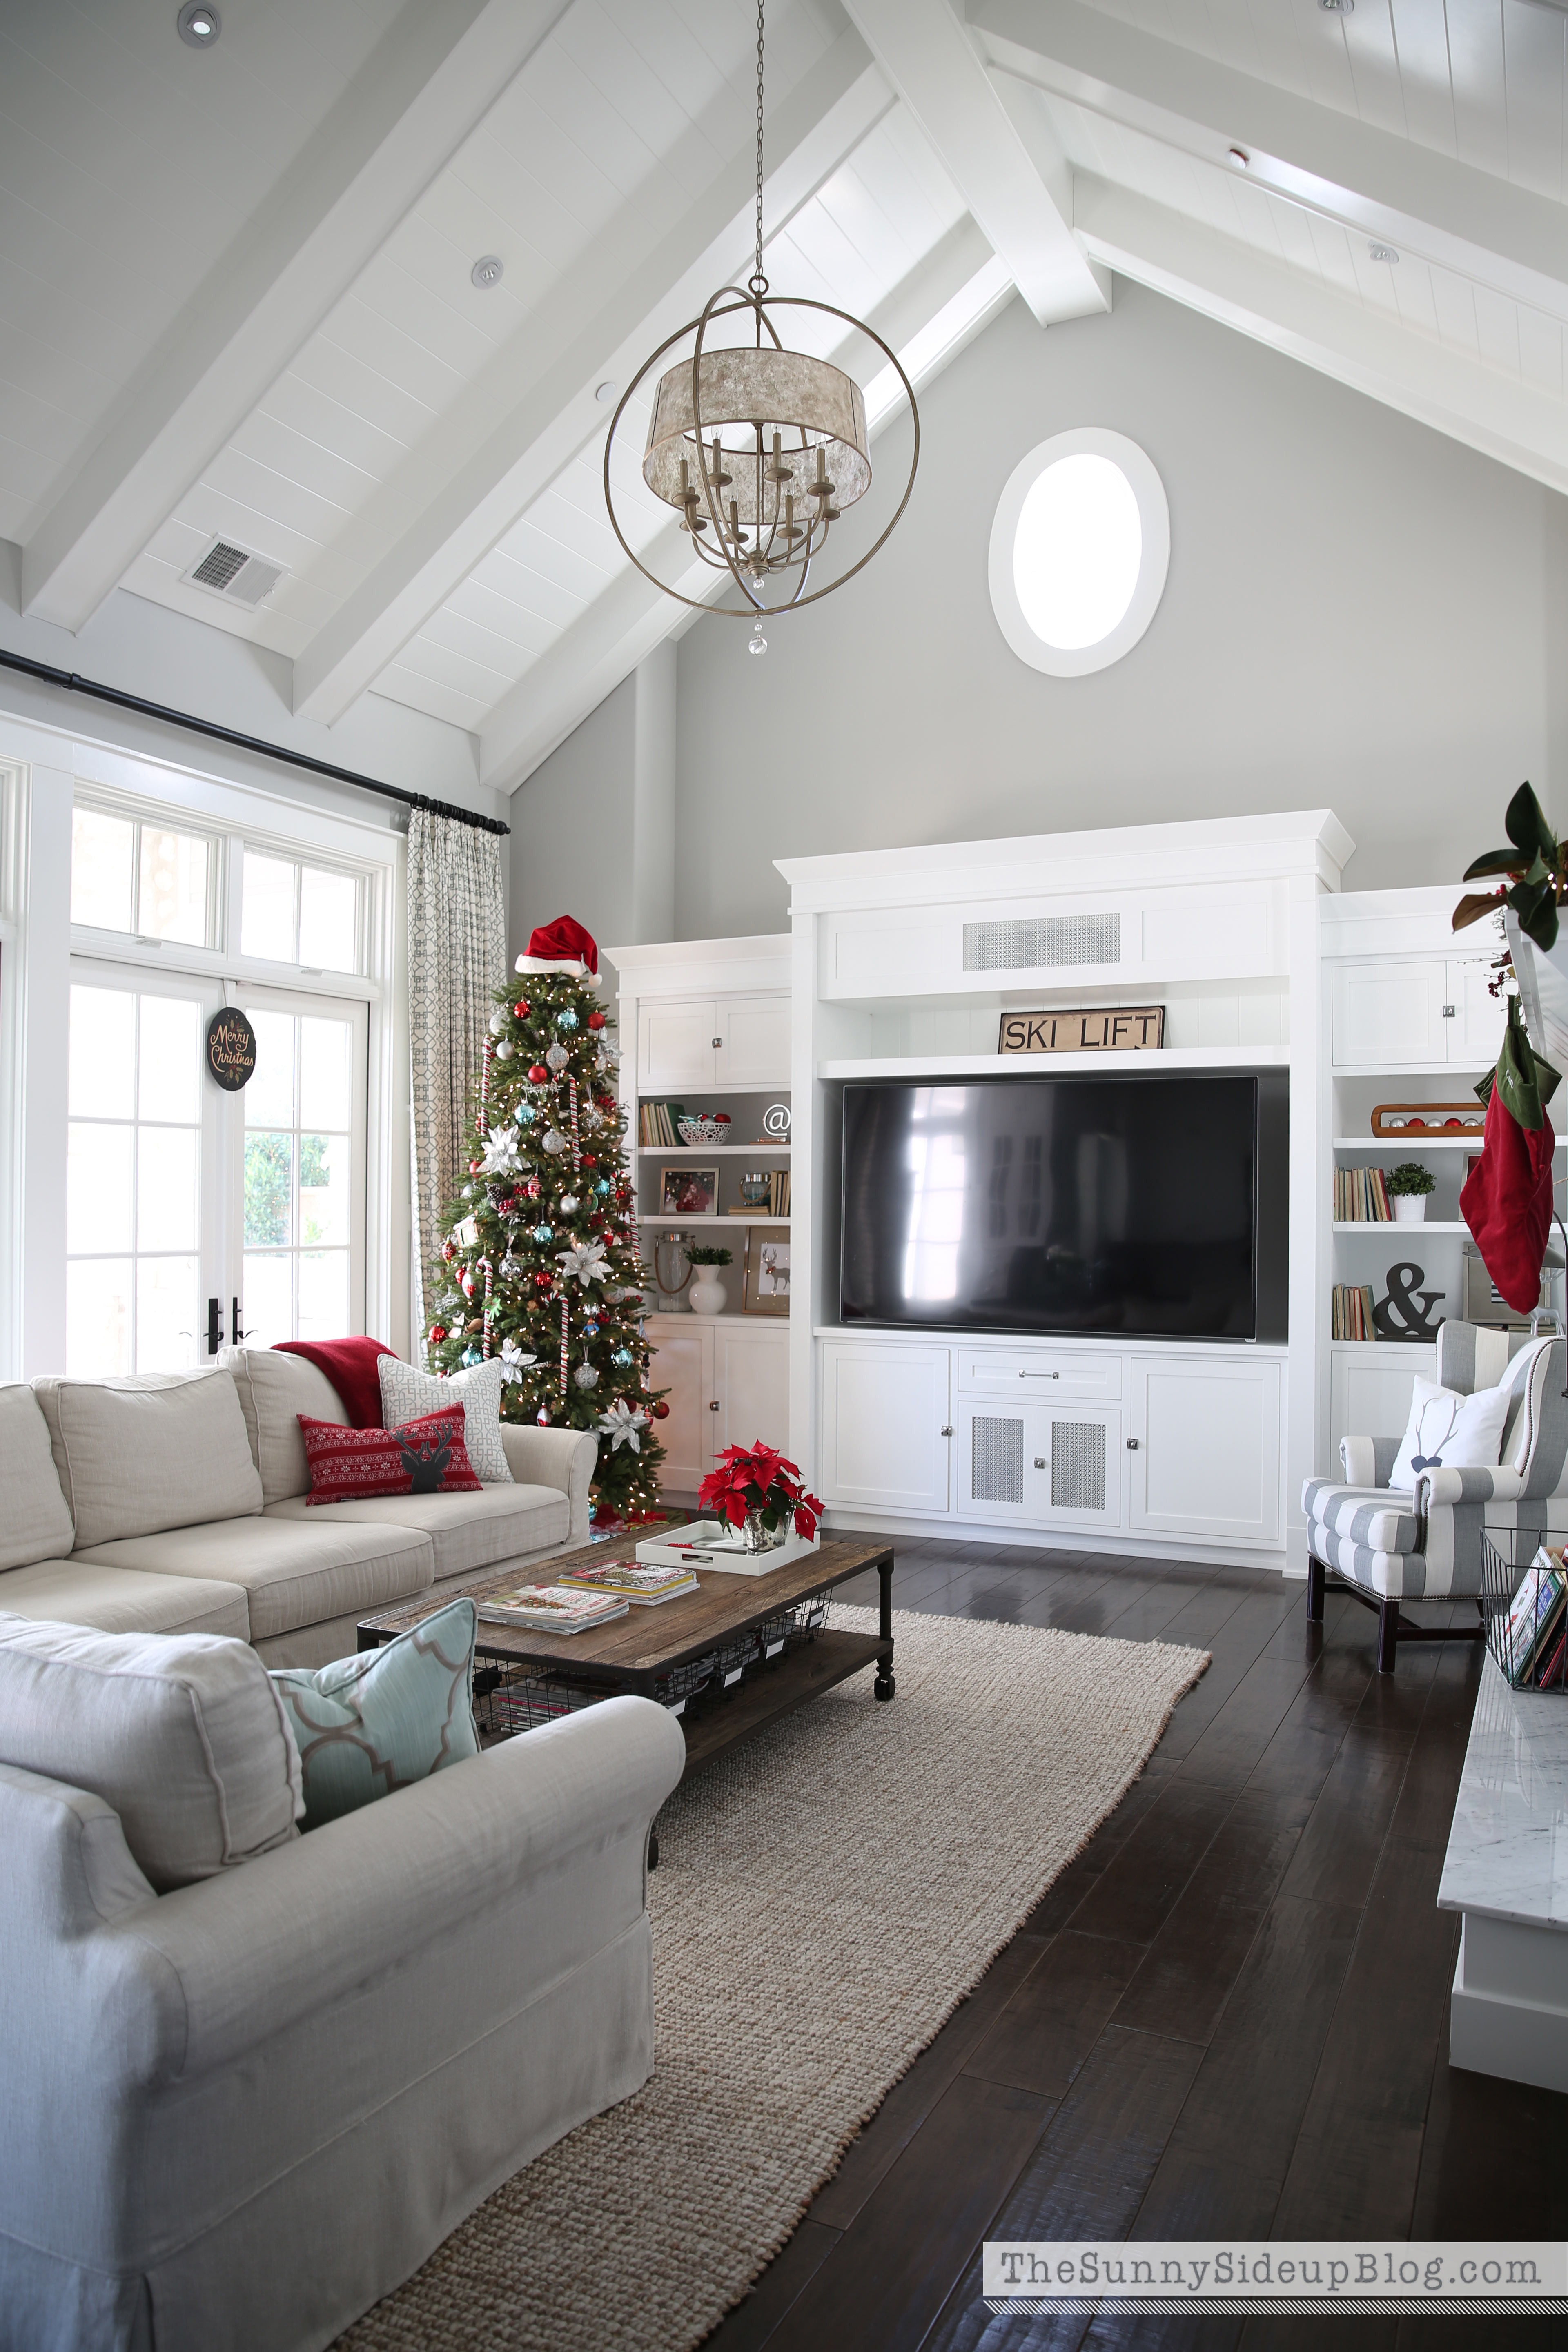 Best ideas about Decor Ideas For Family Room . Save or Pin Christmas in the family room The Sunny Side Up Blog Now.